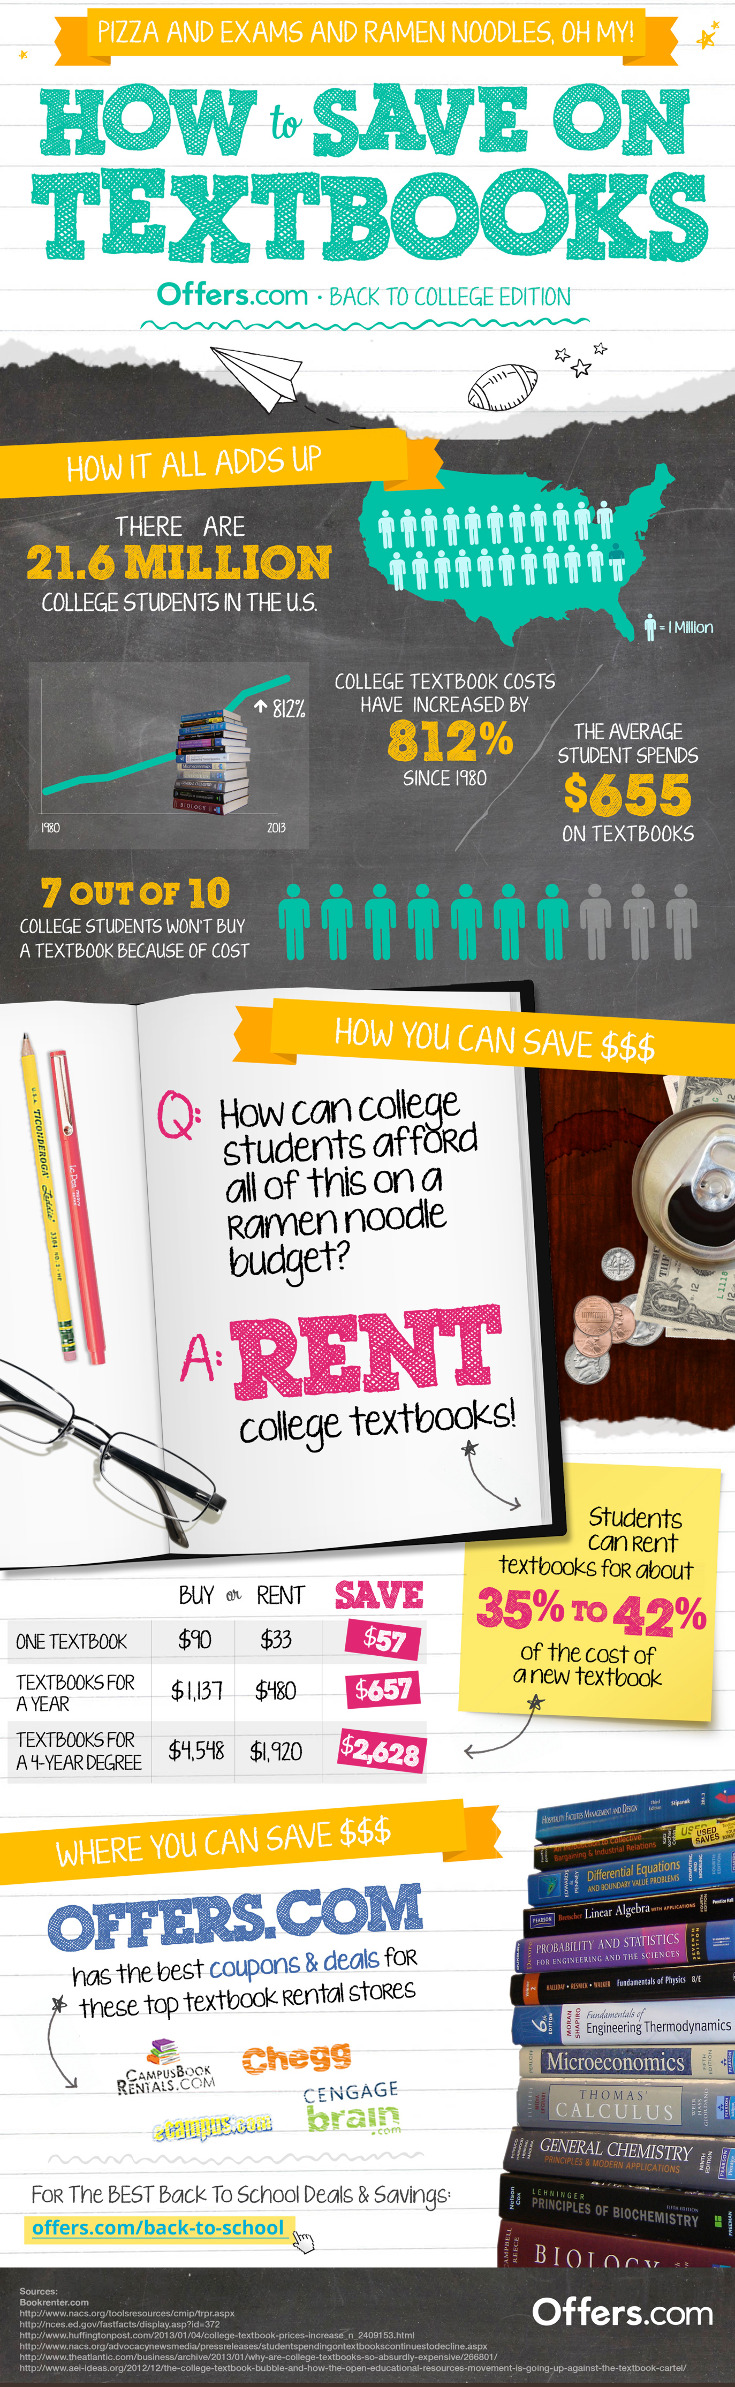 how-to-save-on-textbooks_52162c2b6e7a3